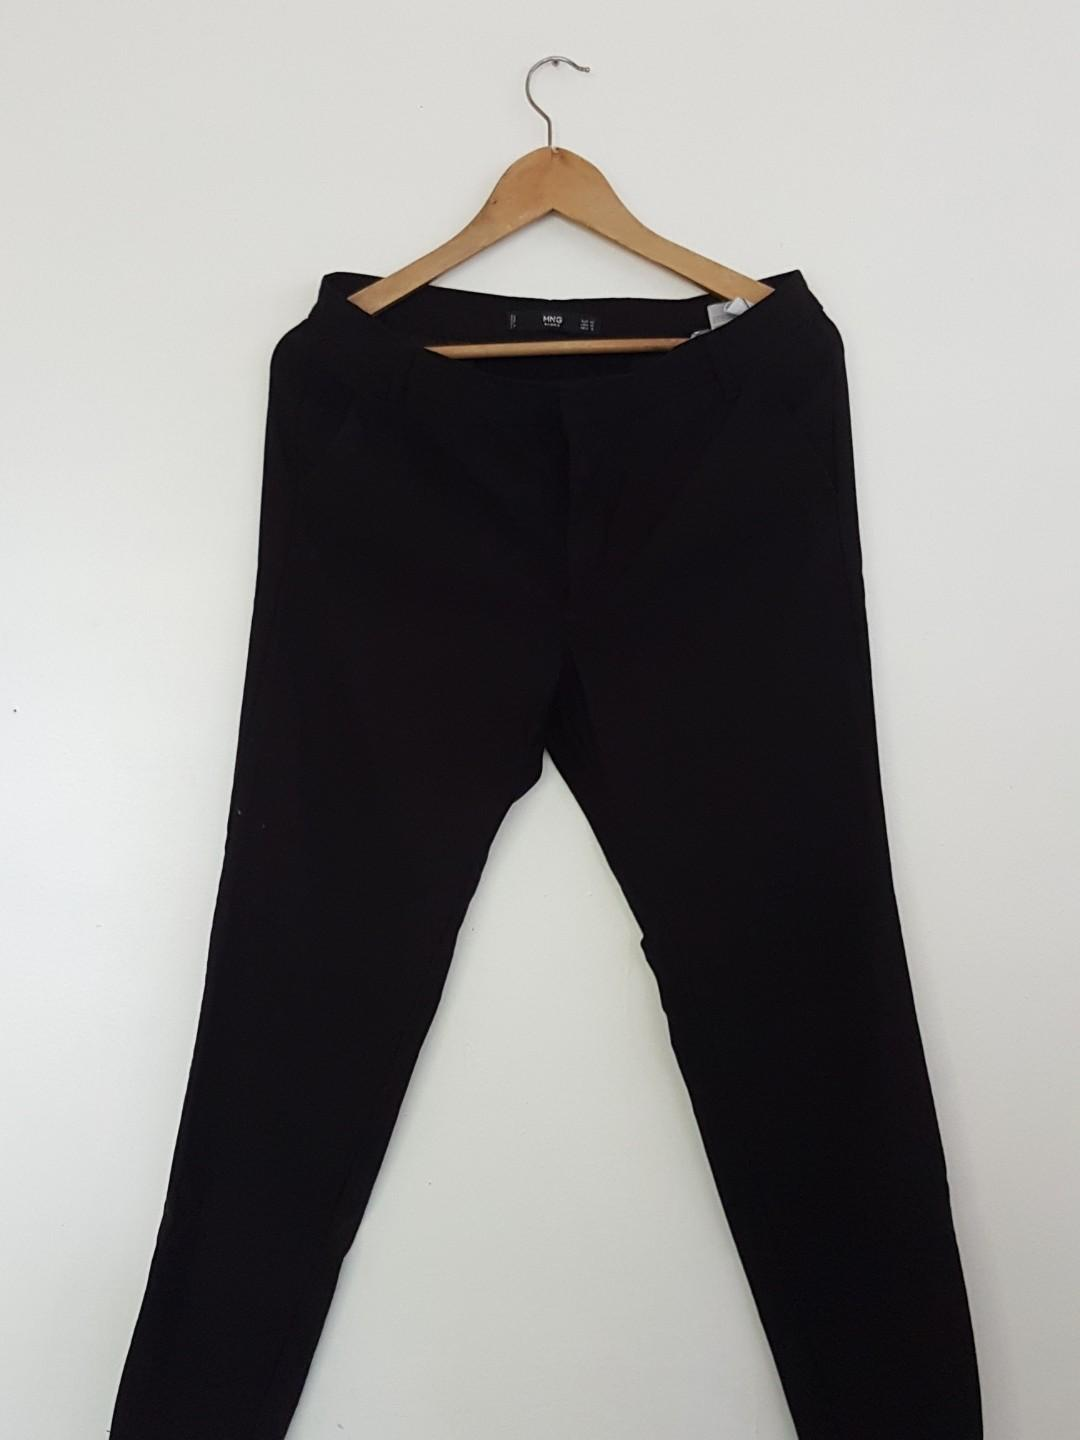 6ebbb87f5 MANGO Black Slacks on Carousell